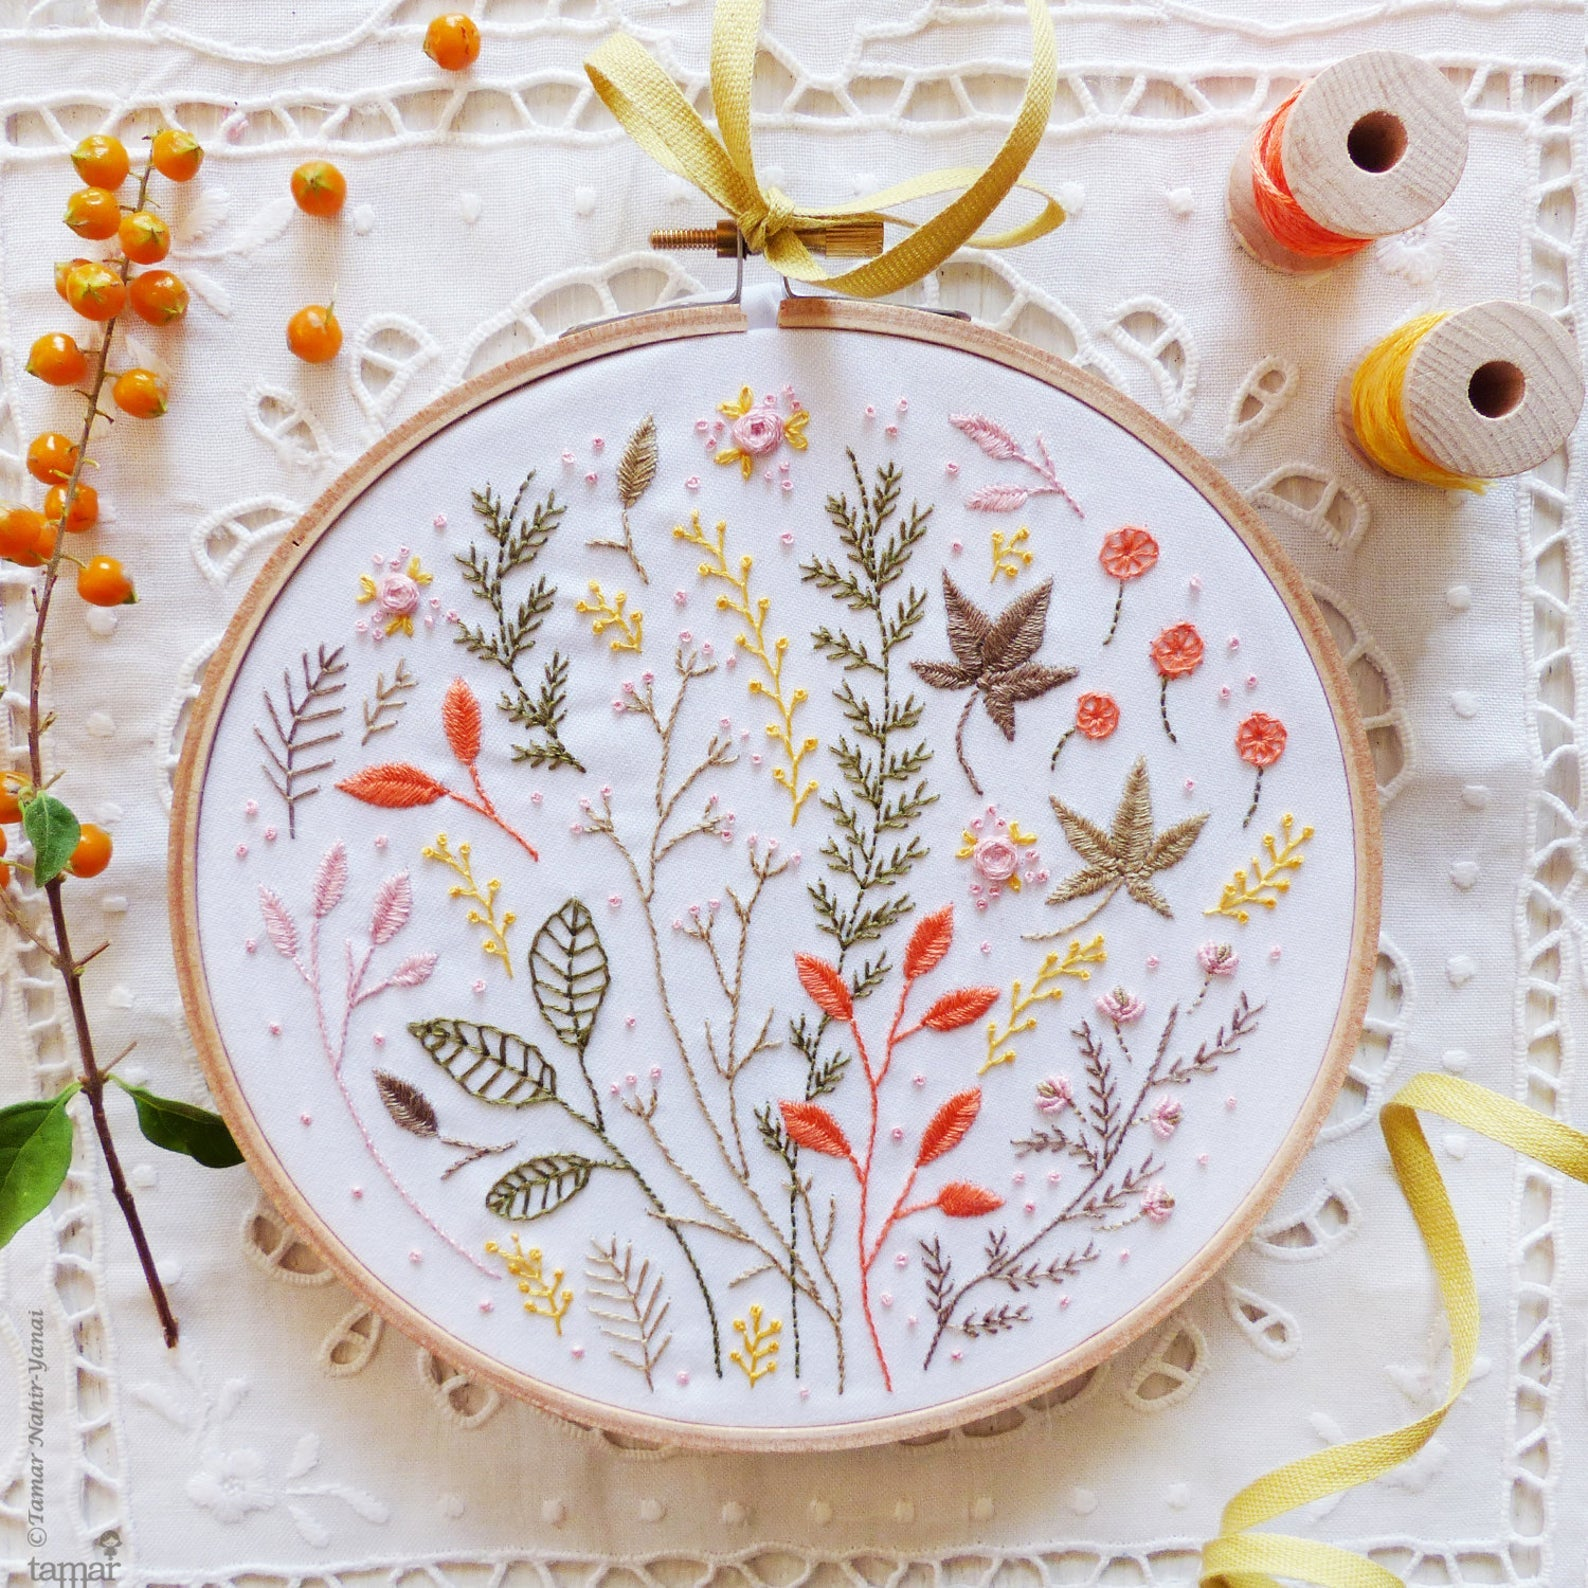 Floral Embroidery Kit - DIY Embroidery Kit